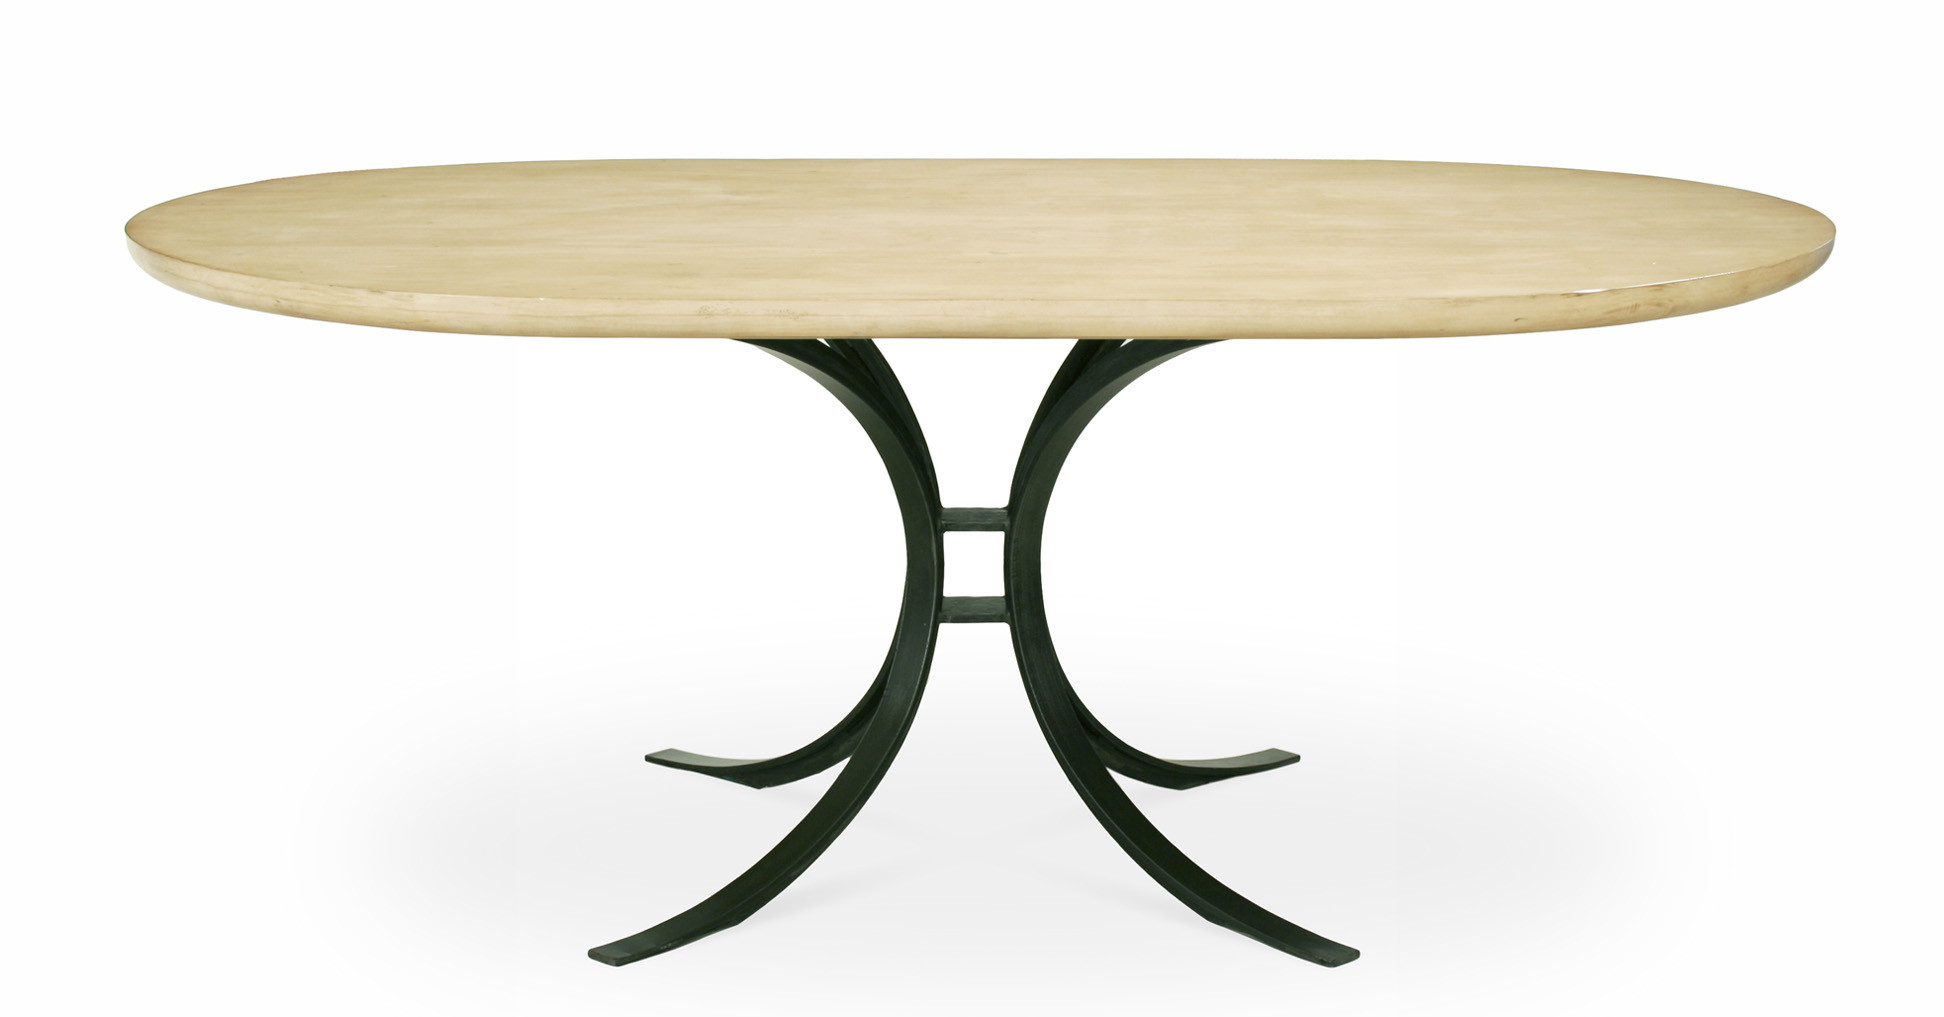 Best ideas about Oval Dining Table . Save or Pin Quincy Oval Dining Table for Sale Cottage & Bungalow Now.